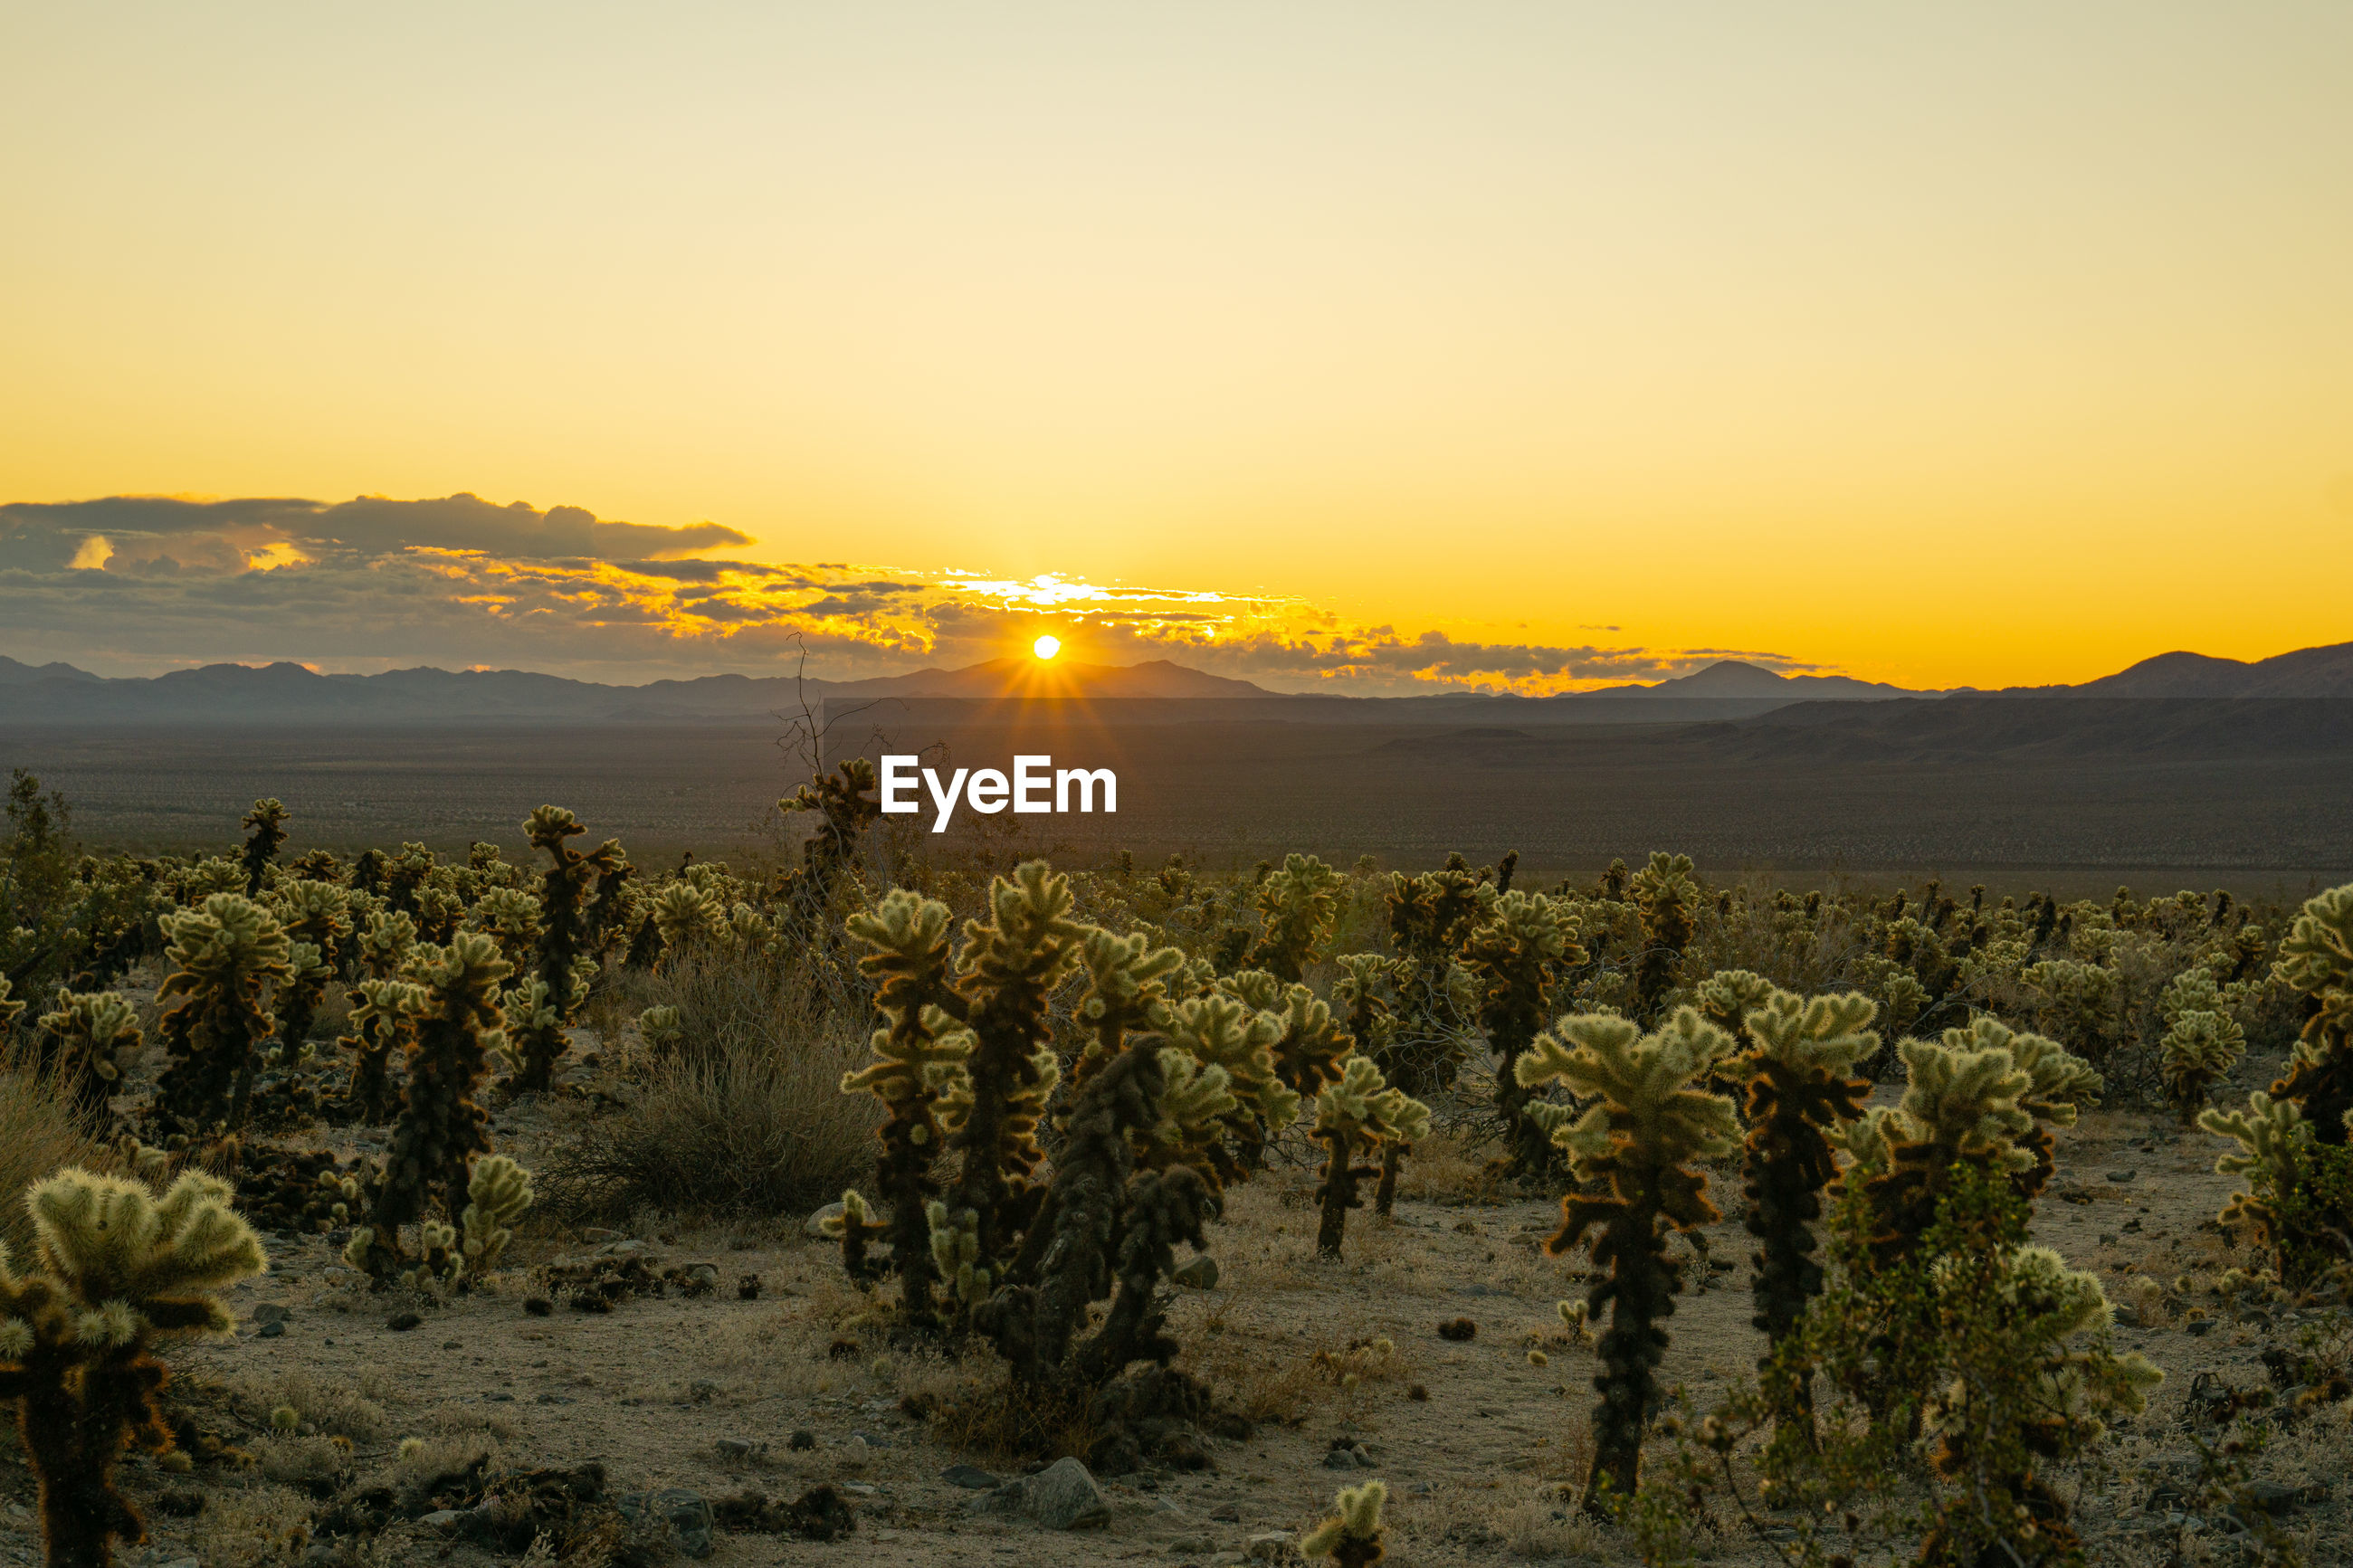 Scenic view of cactus field against sky during sunrise